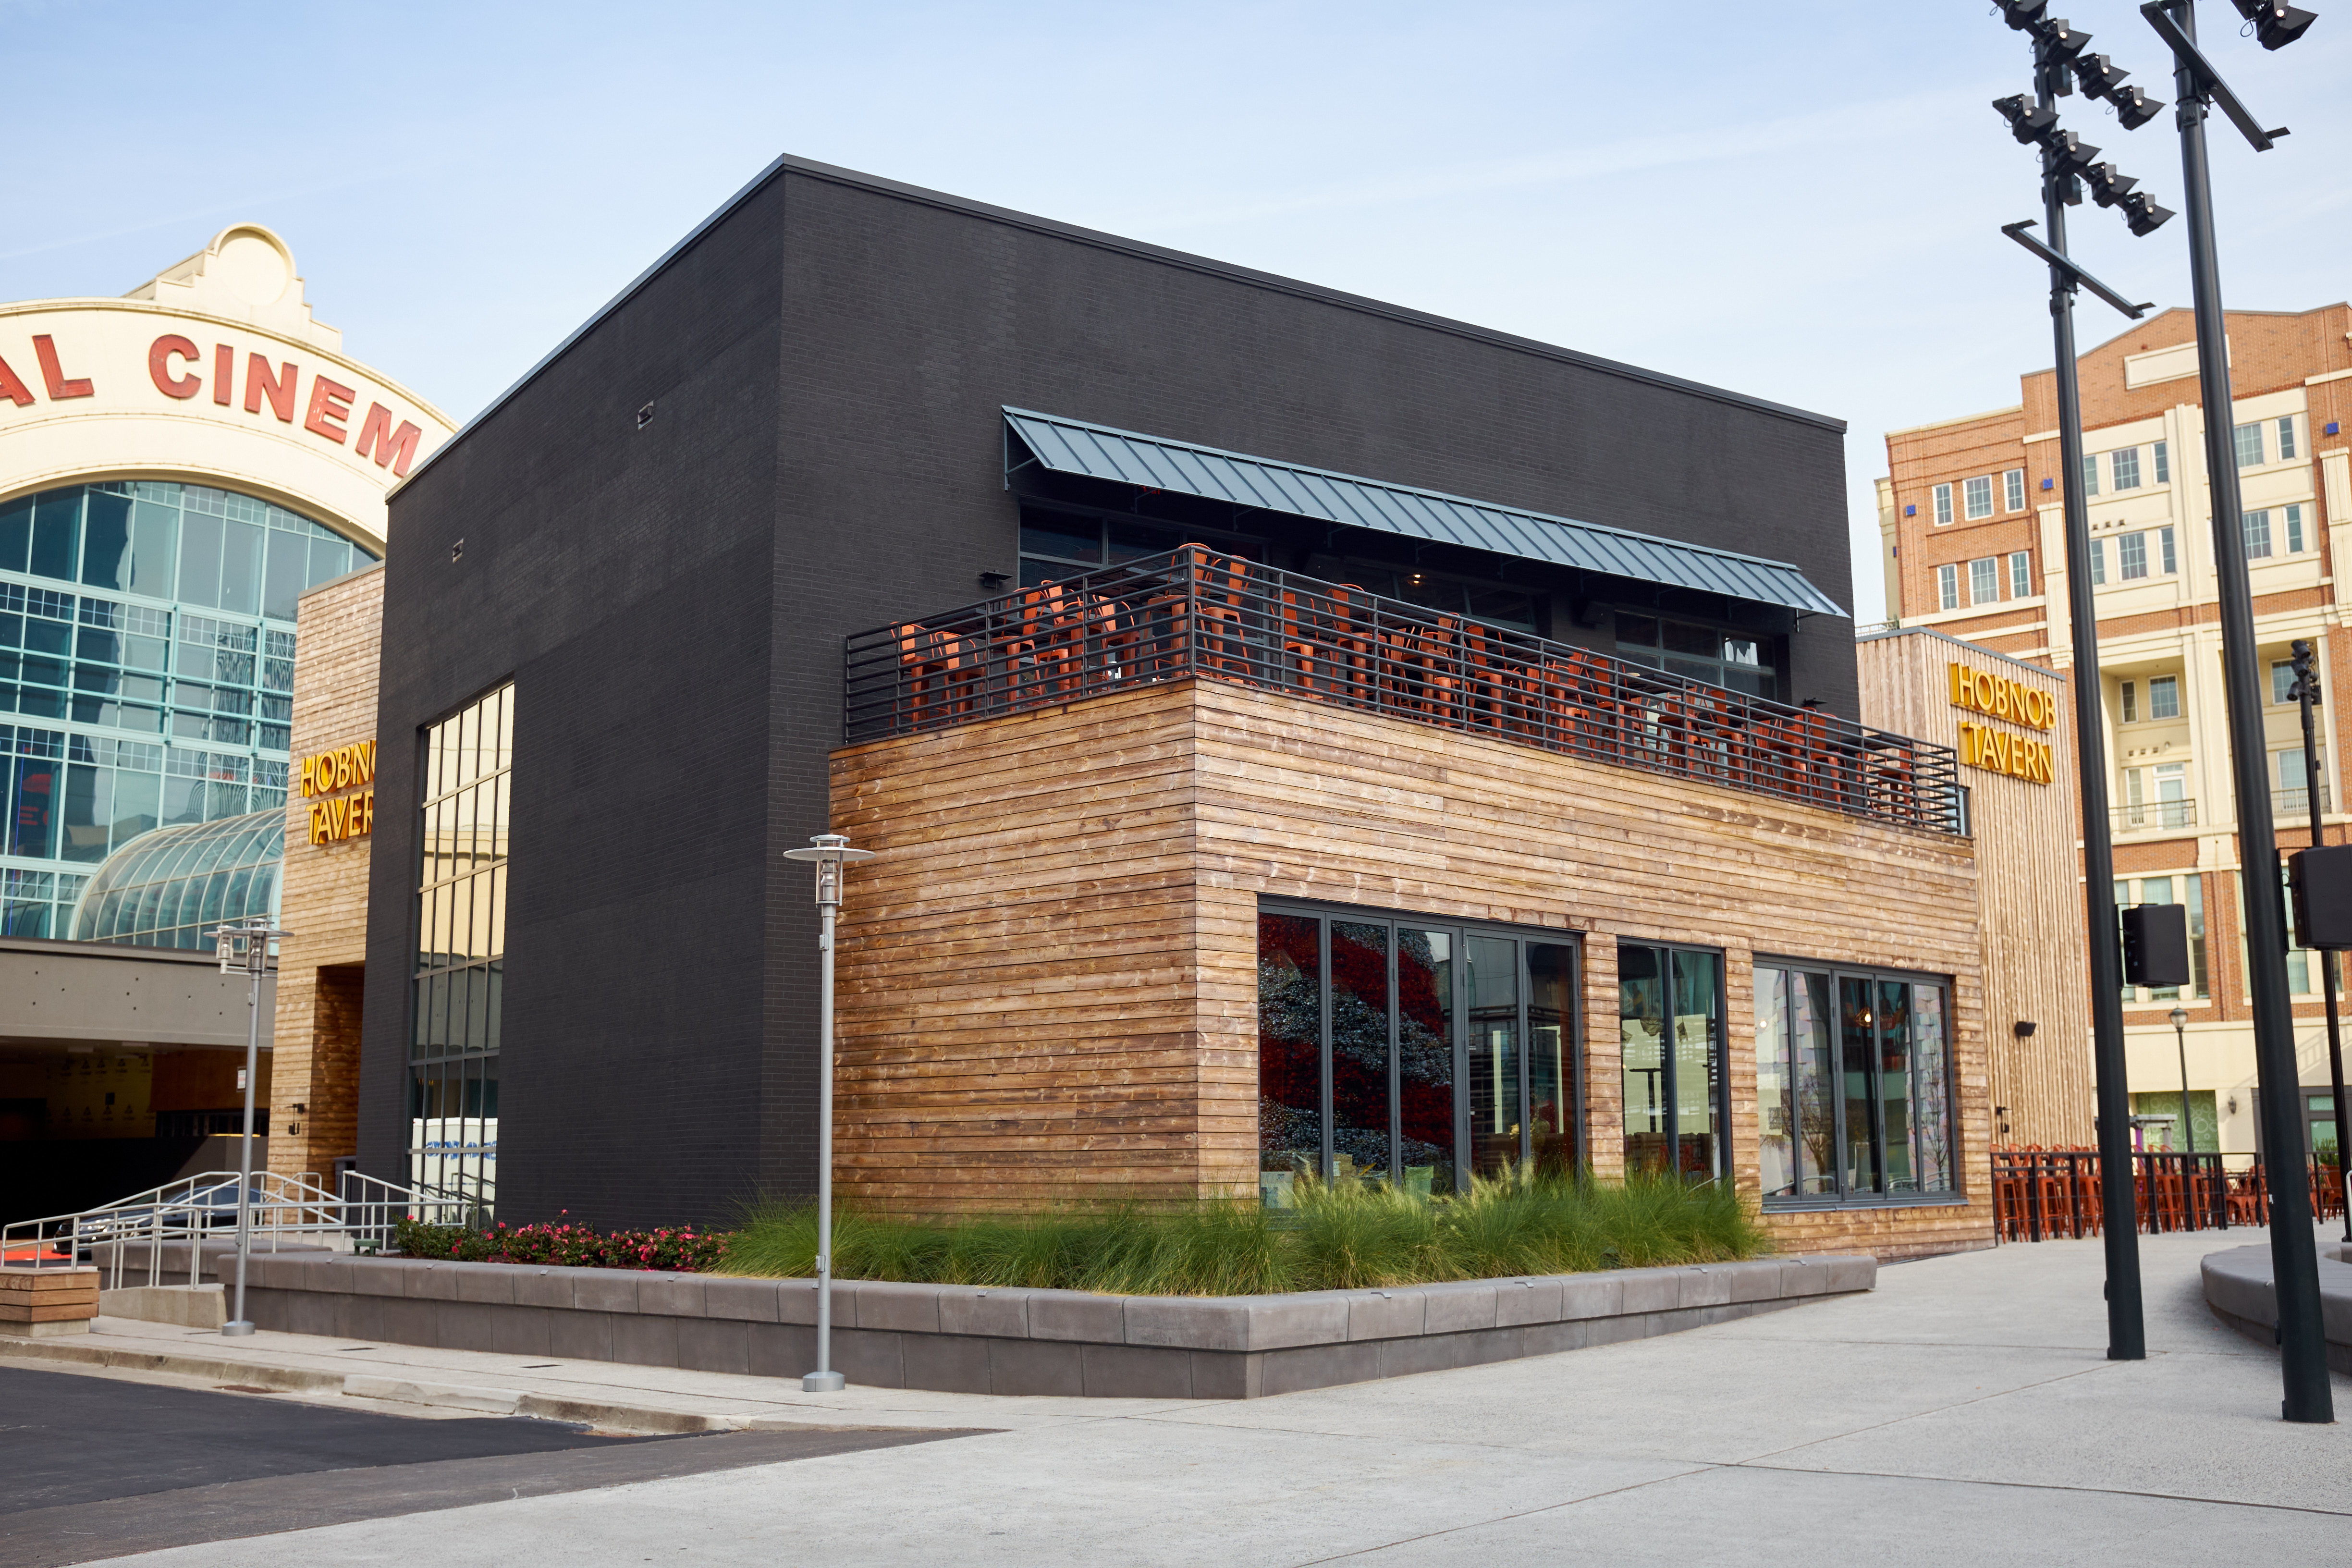 The black concrete and wood front exterior of Hobnob Neighborhood Tavern at Atlantic Station. A second story patios includes red metal chairs and tables overlooking the small central park of the complex in Midtown Atlanta.